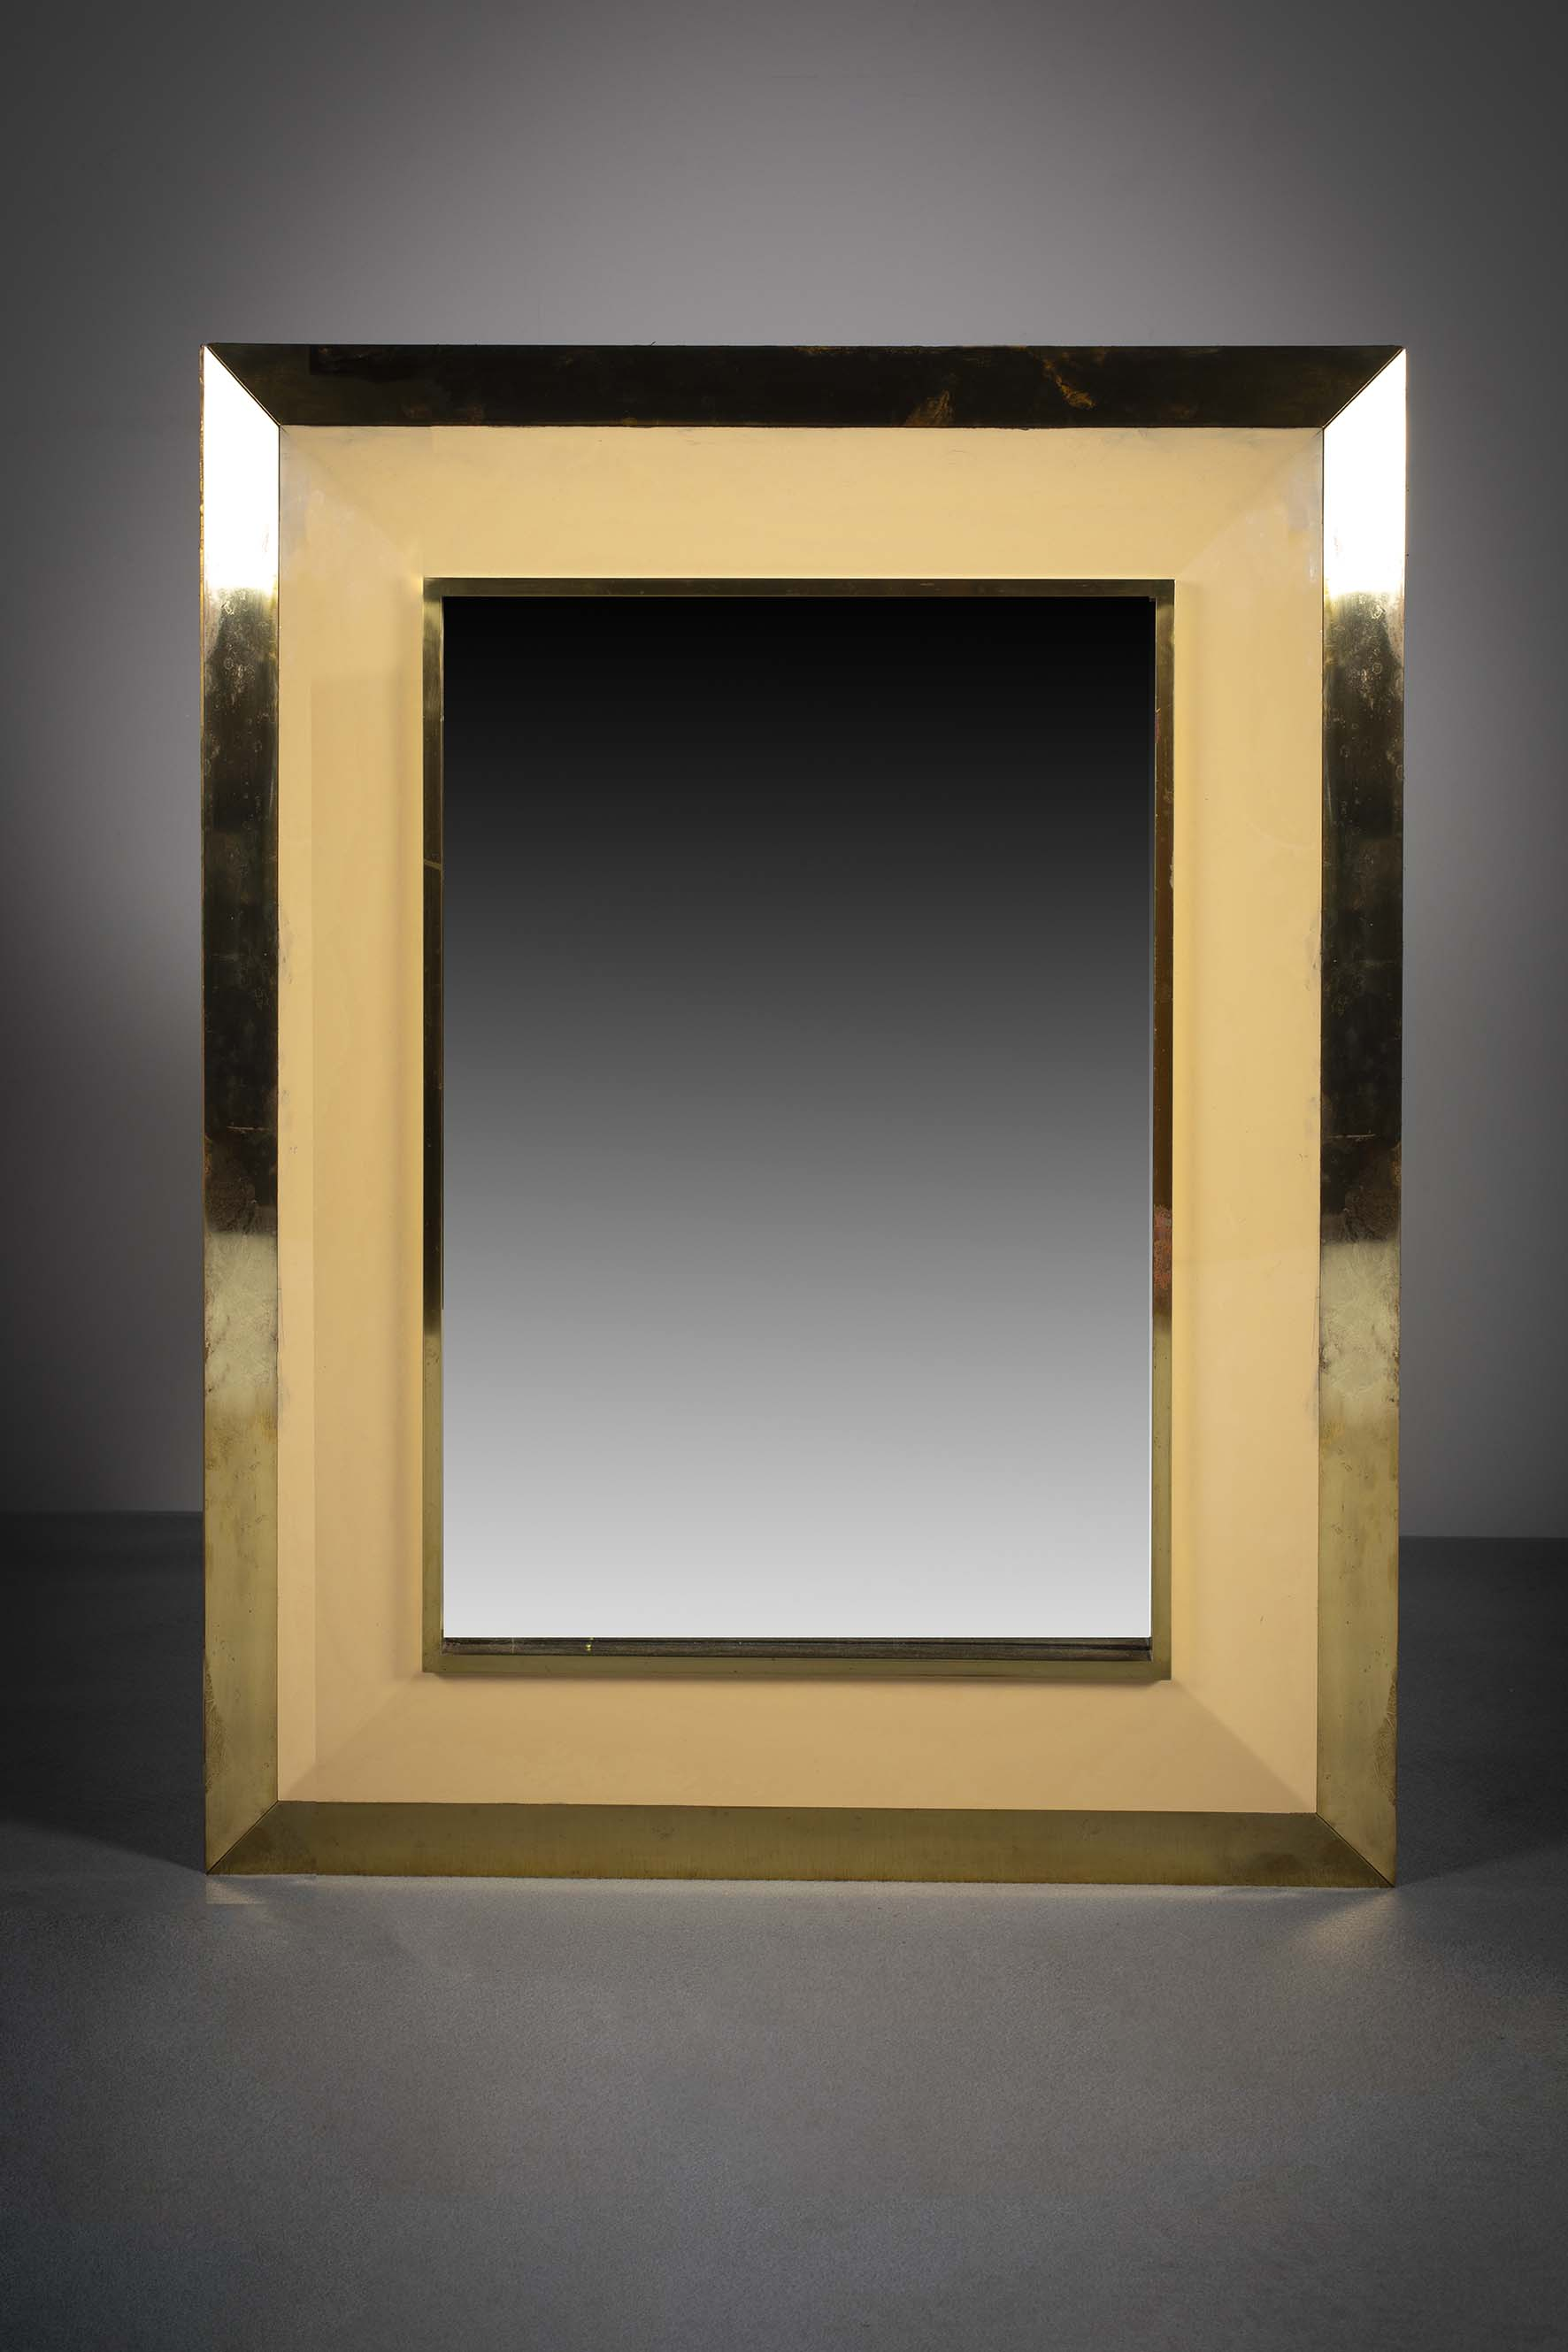 Lot 49 - WALL MIRROR by Jean Claude Mahay